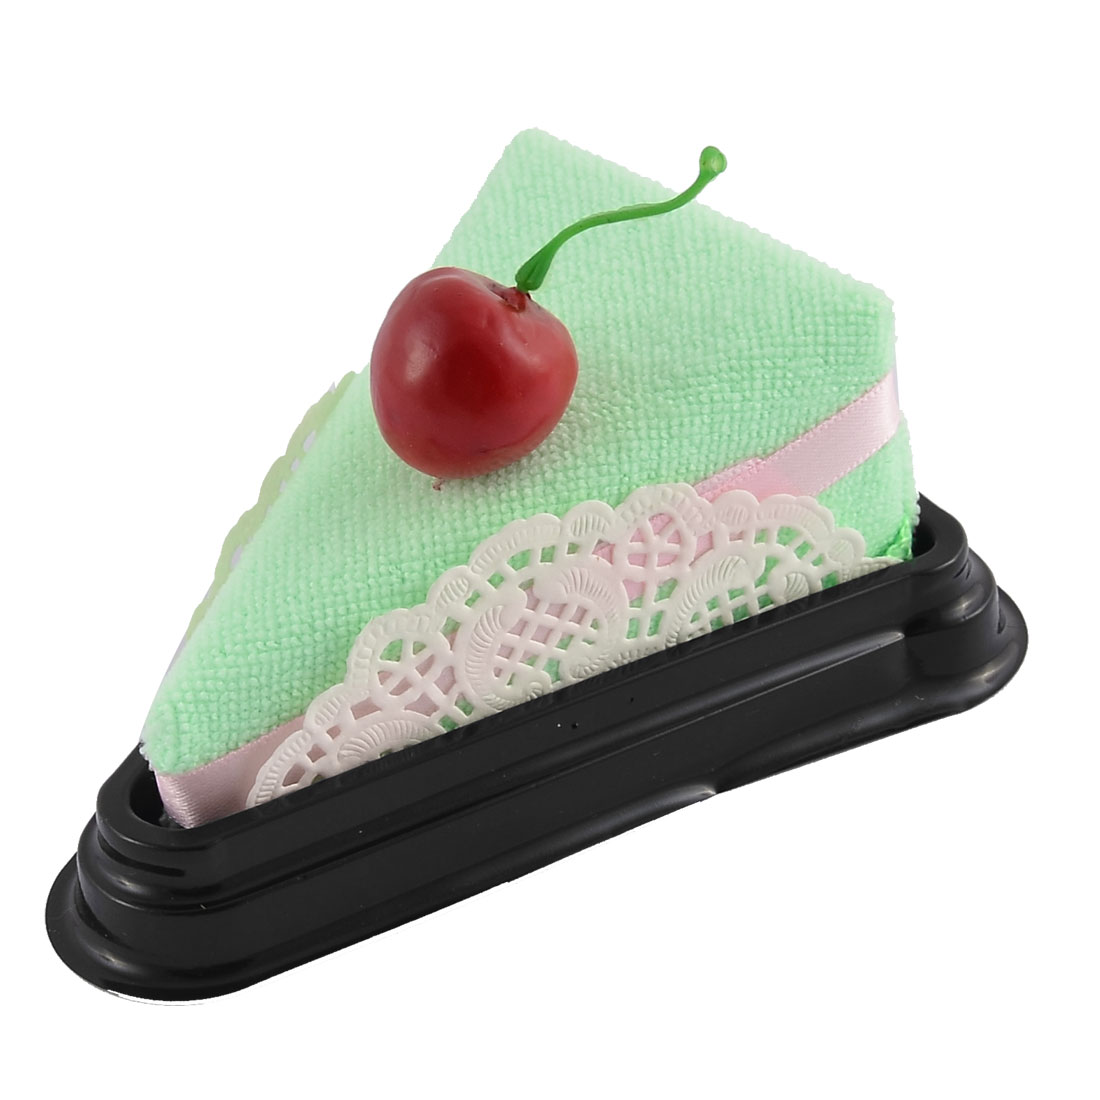 Simulated Cherry Detail Triangular Cake Sandwich Towel Washcloth Decor Gift Green